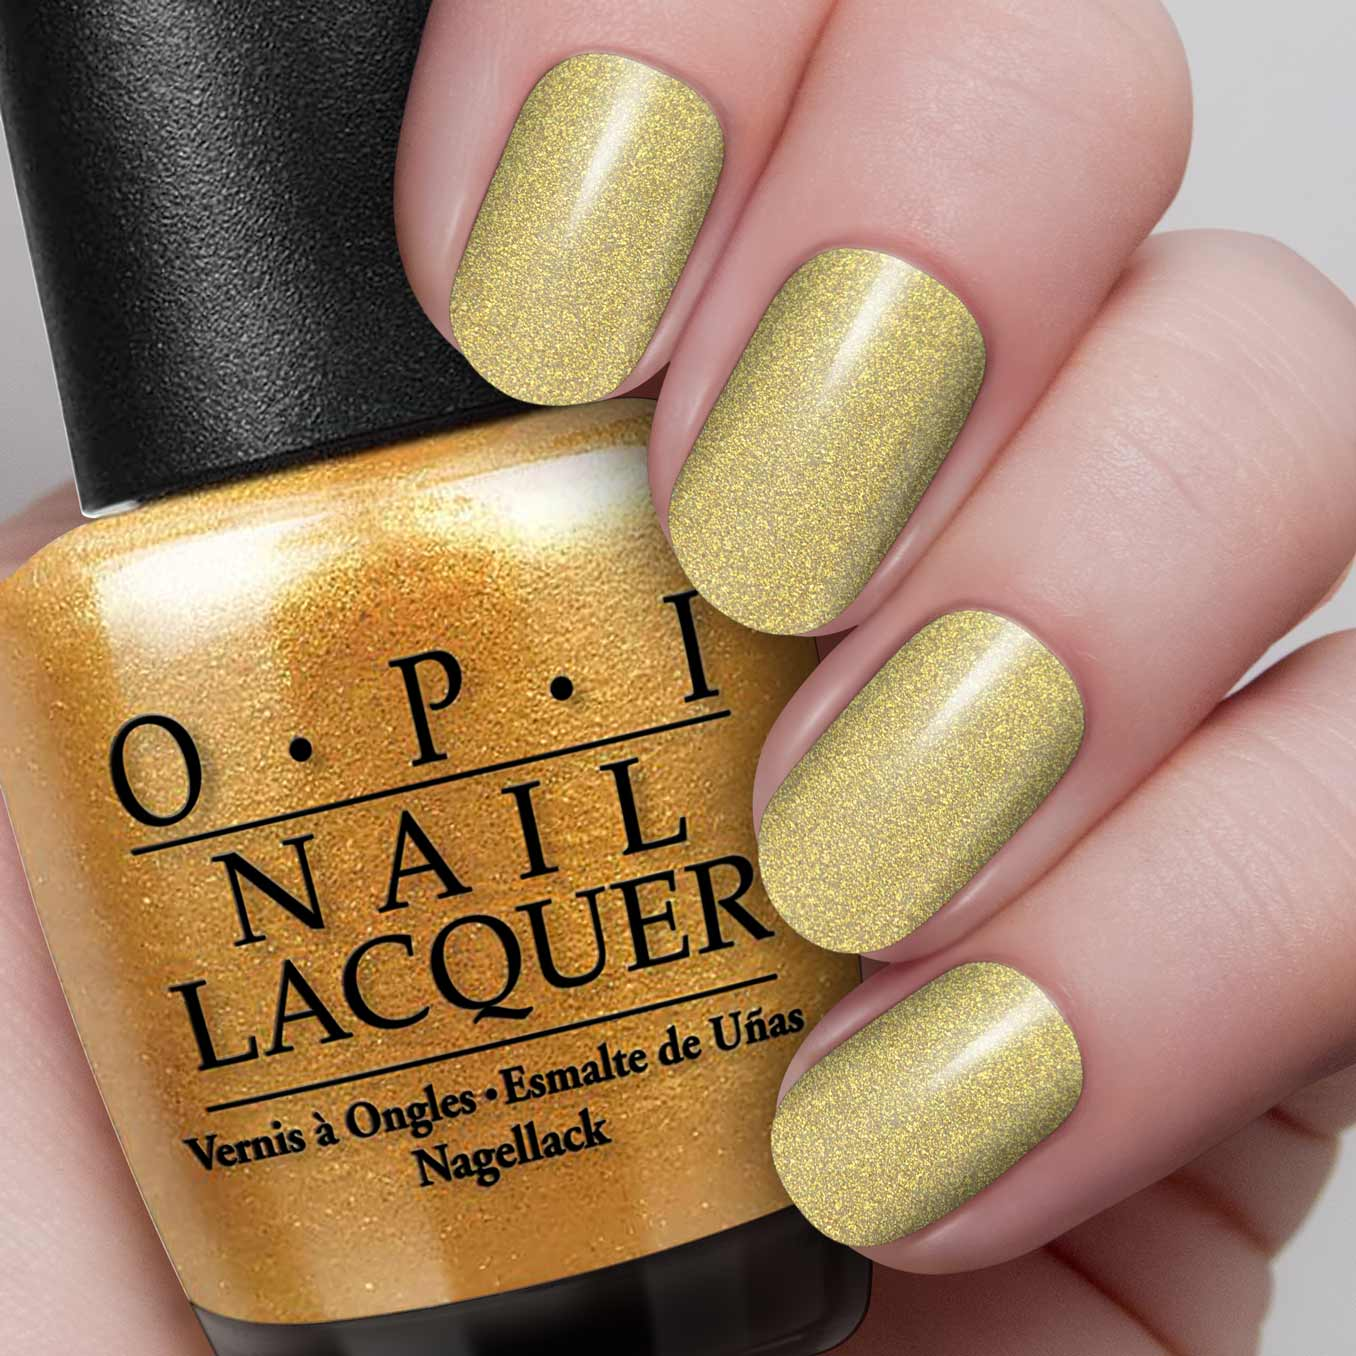 OPI Nail Polish – Oy-another Polish Joke – Hollywood Nails Supply UK